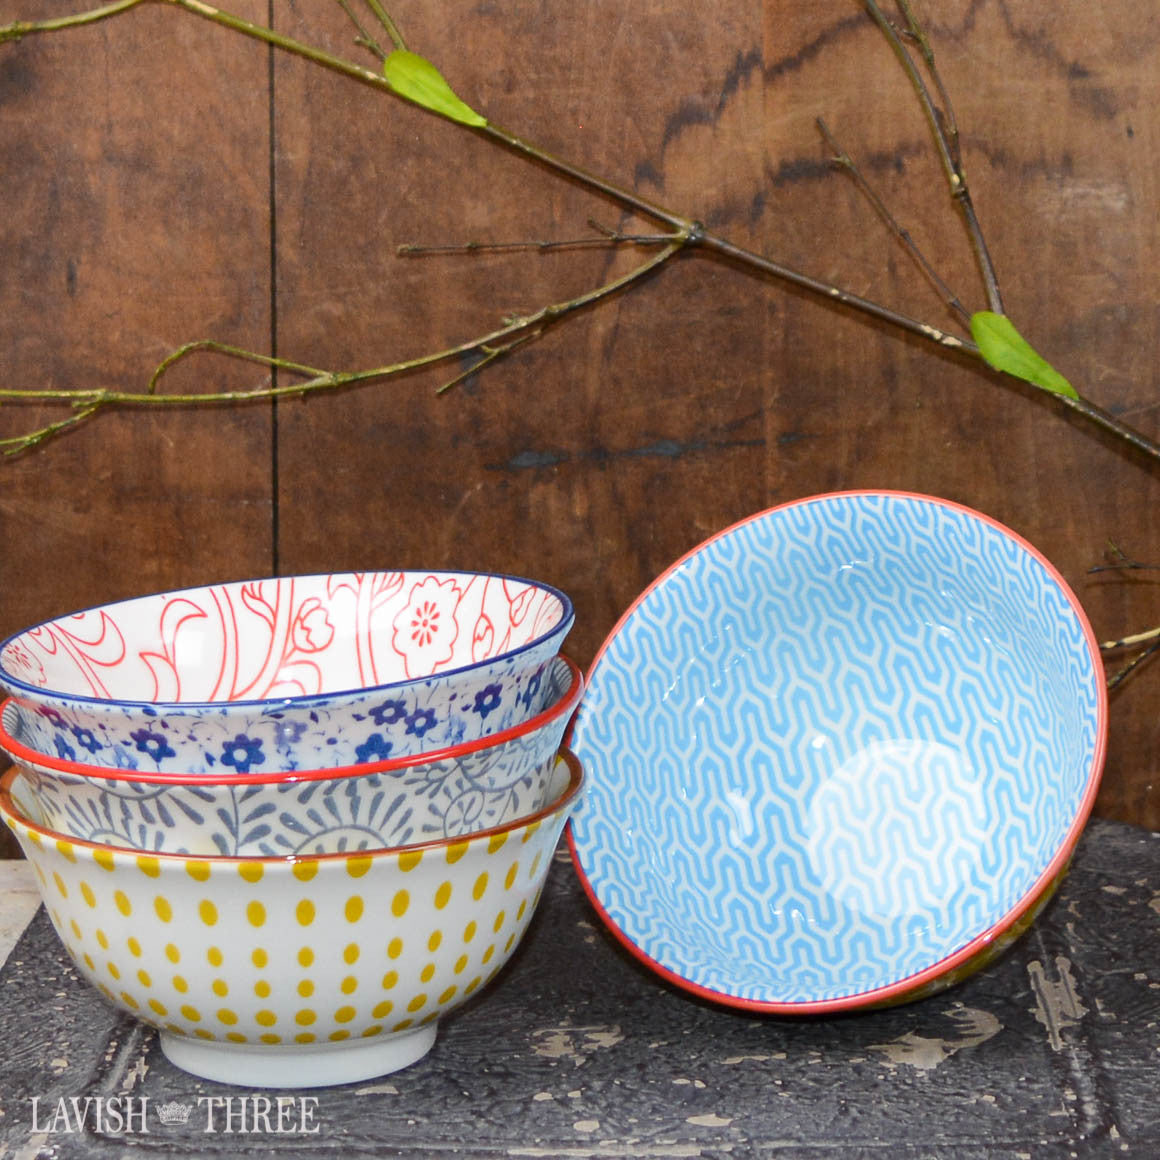 Eclectic cereal bowls polka dot, floral and pattern Lavish three 3